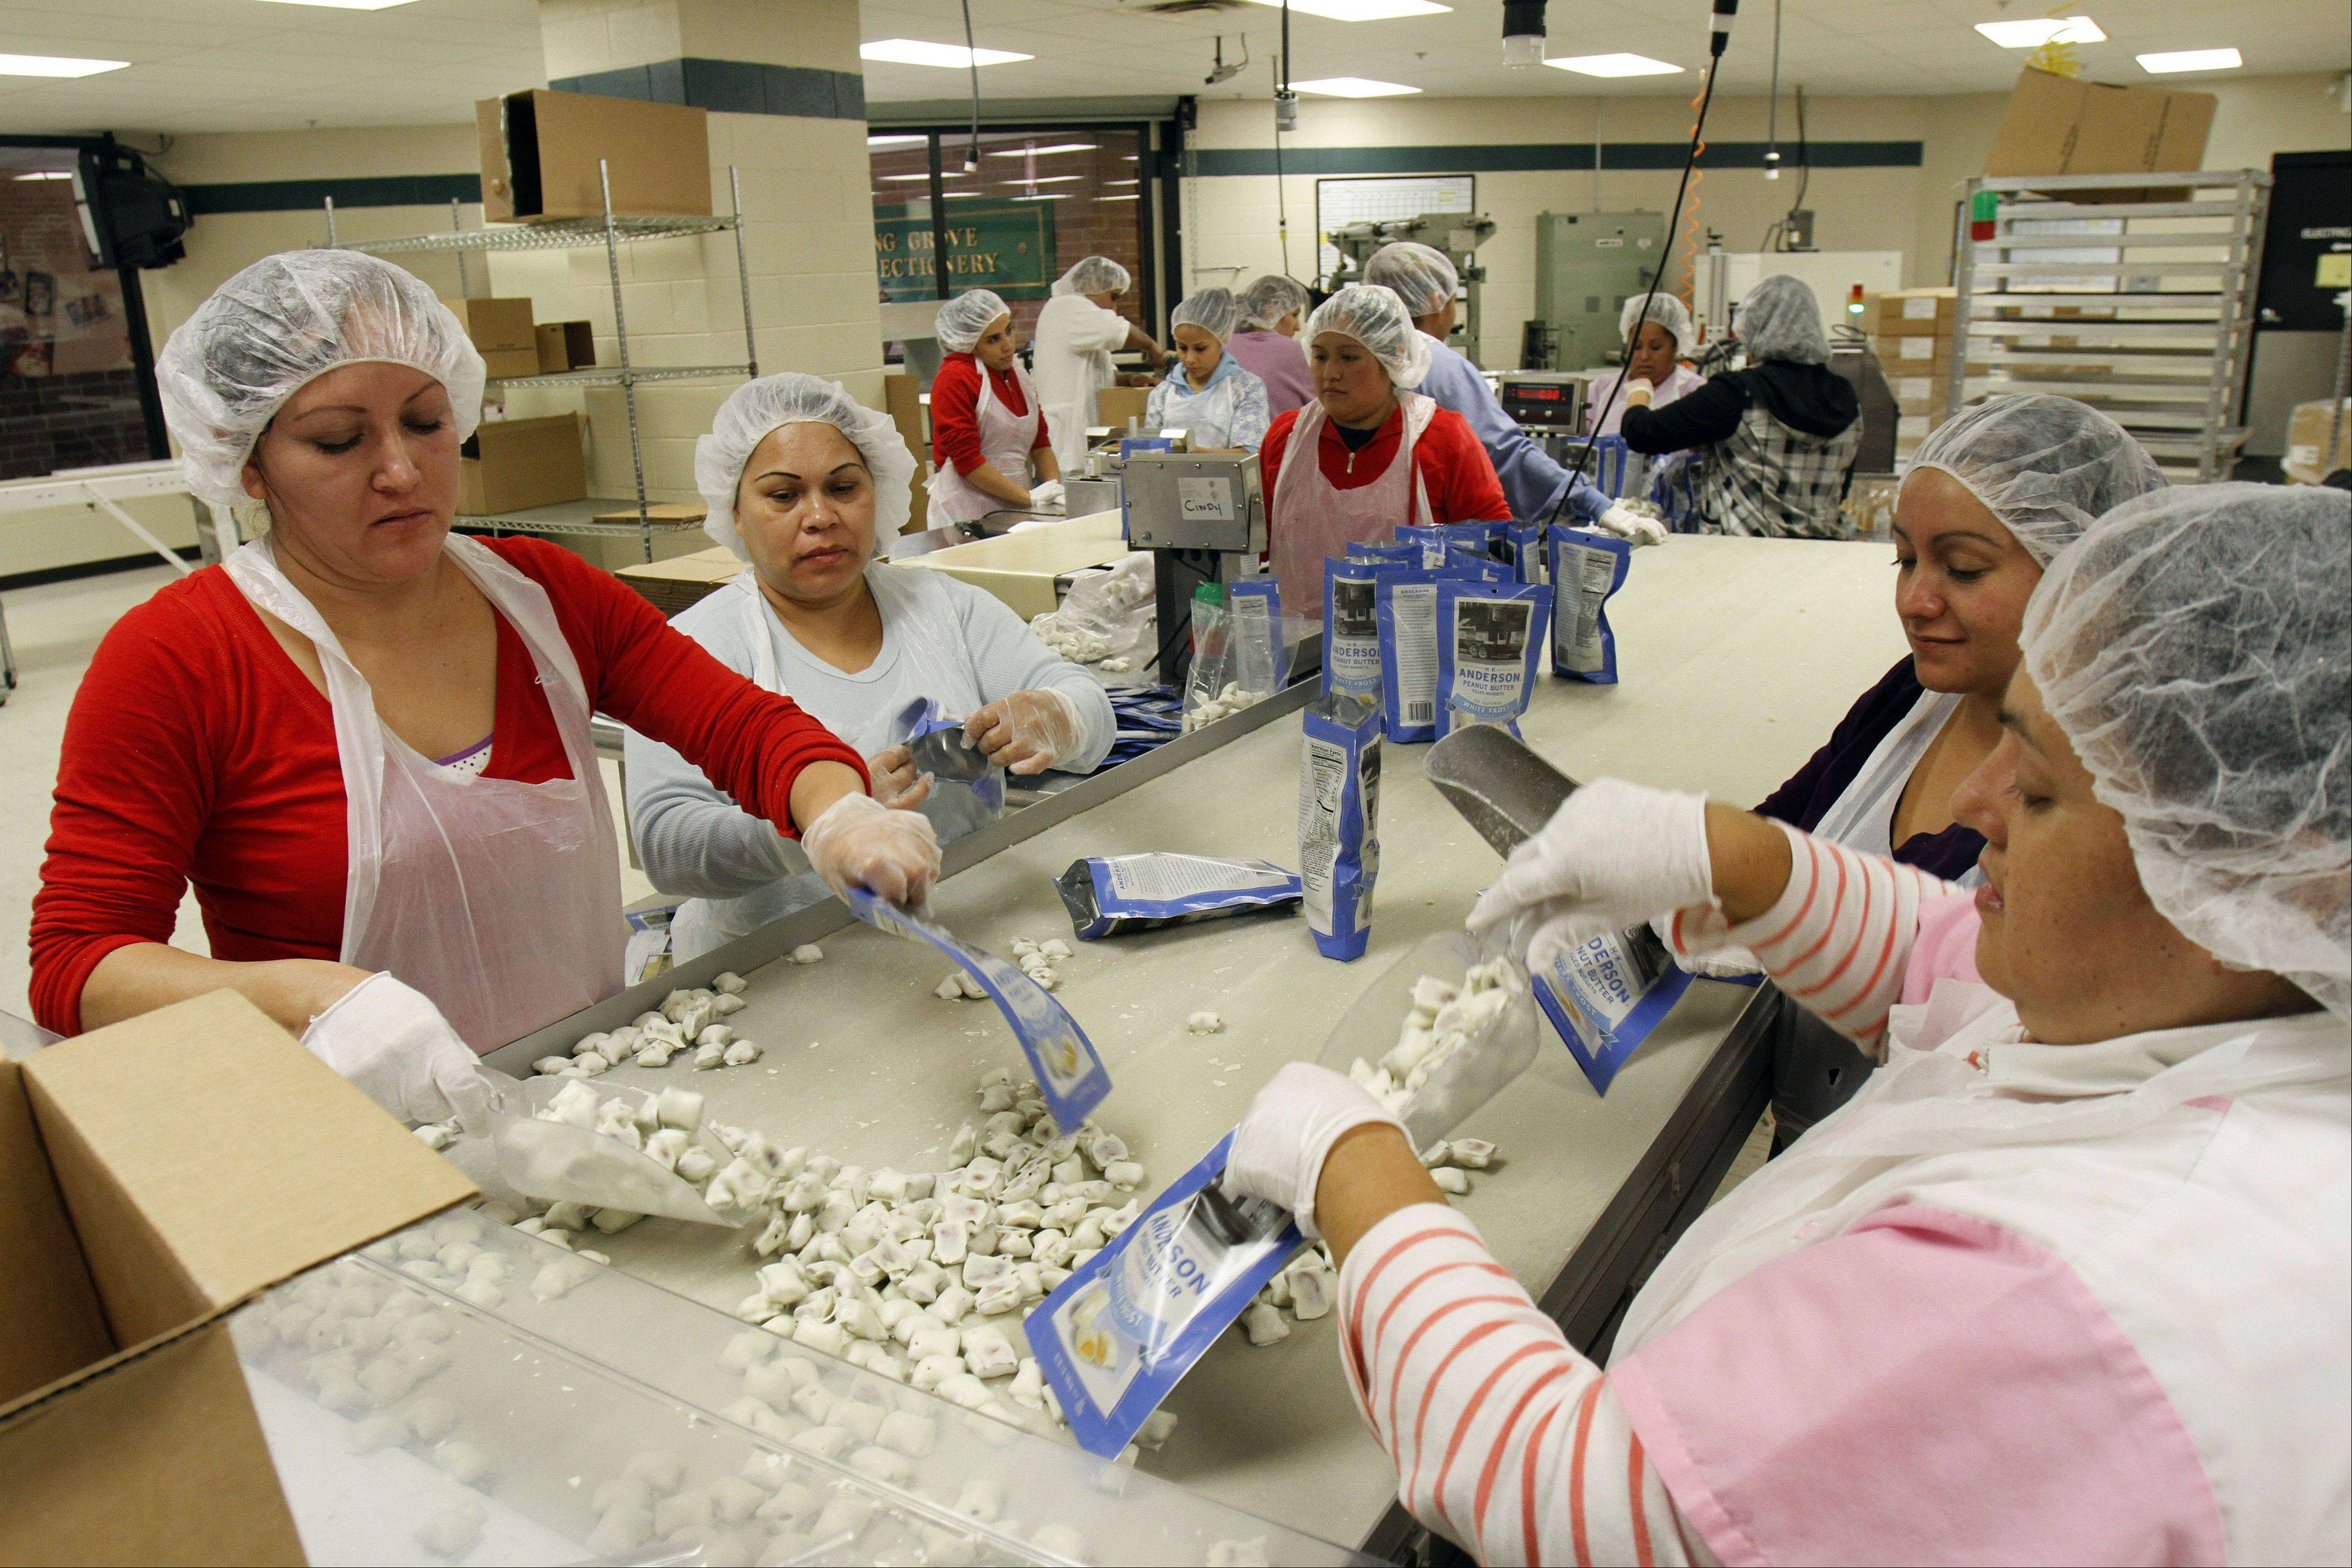 Workers sort candy into bags inside the facility.